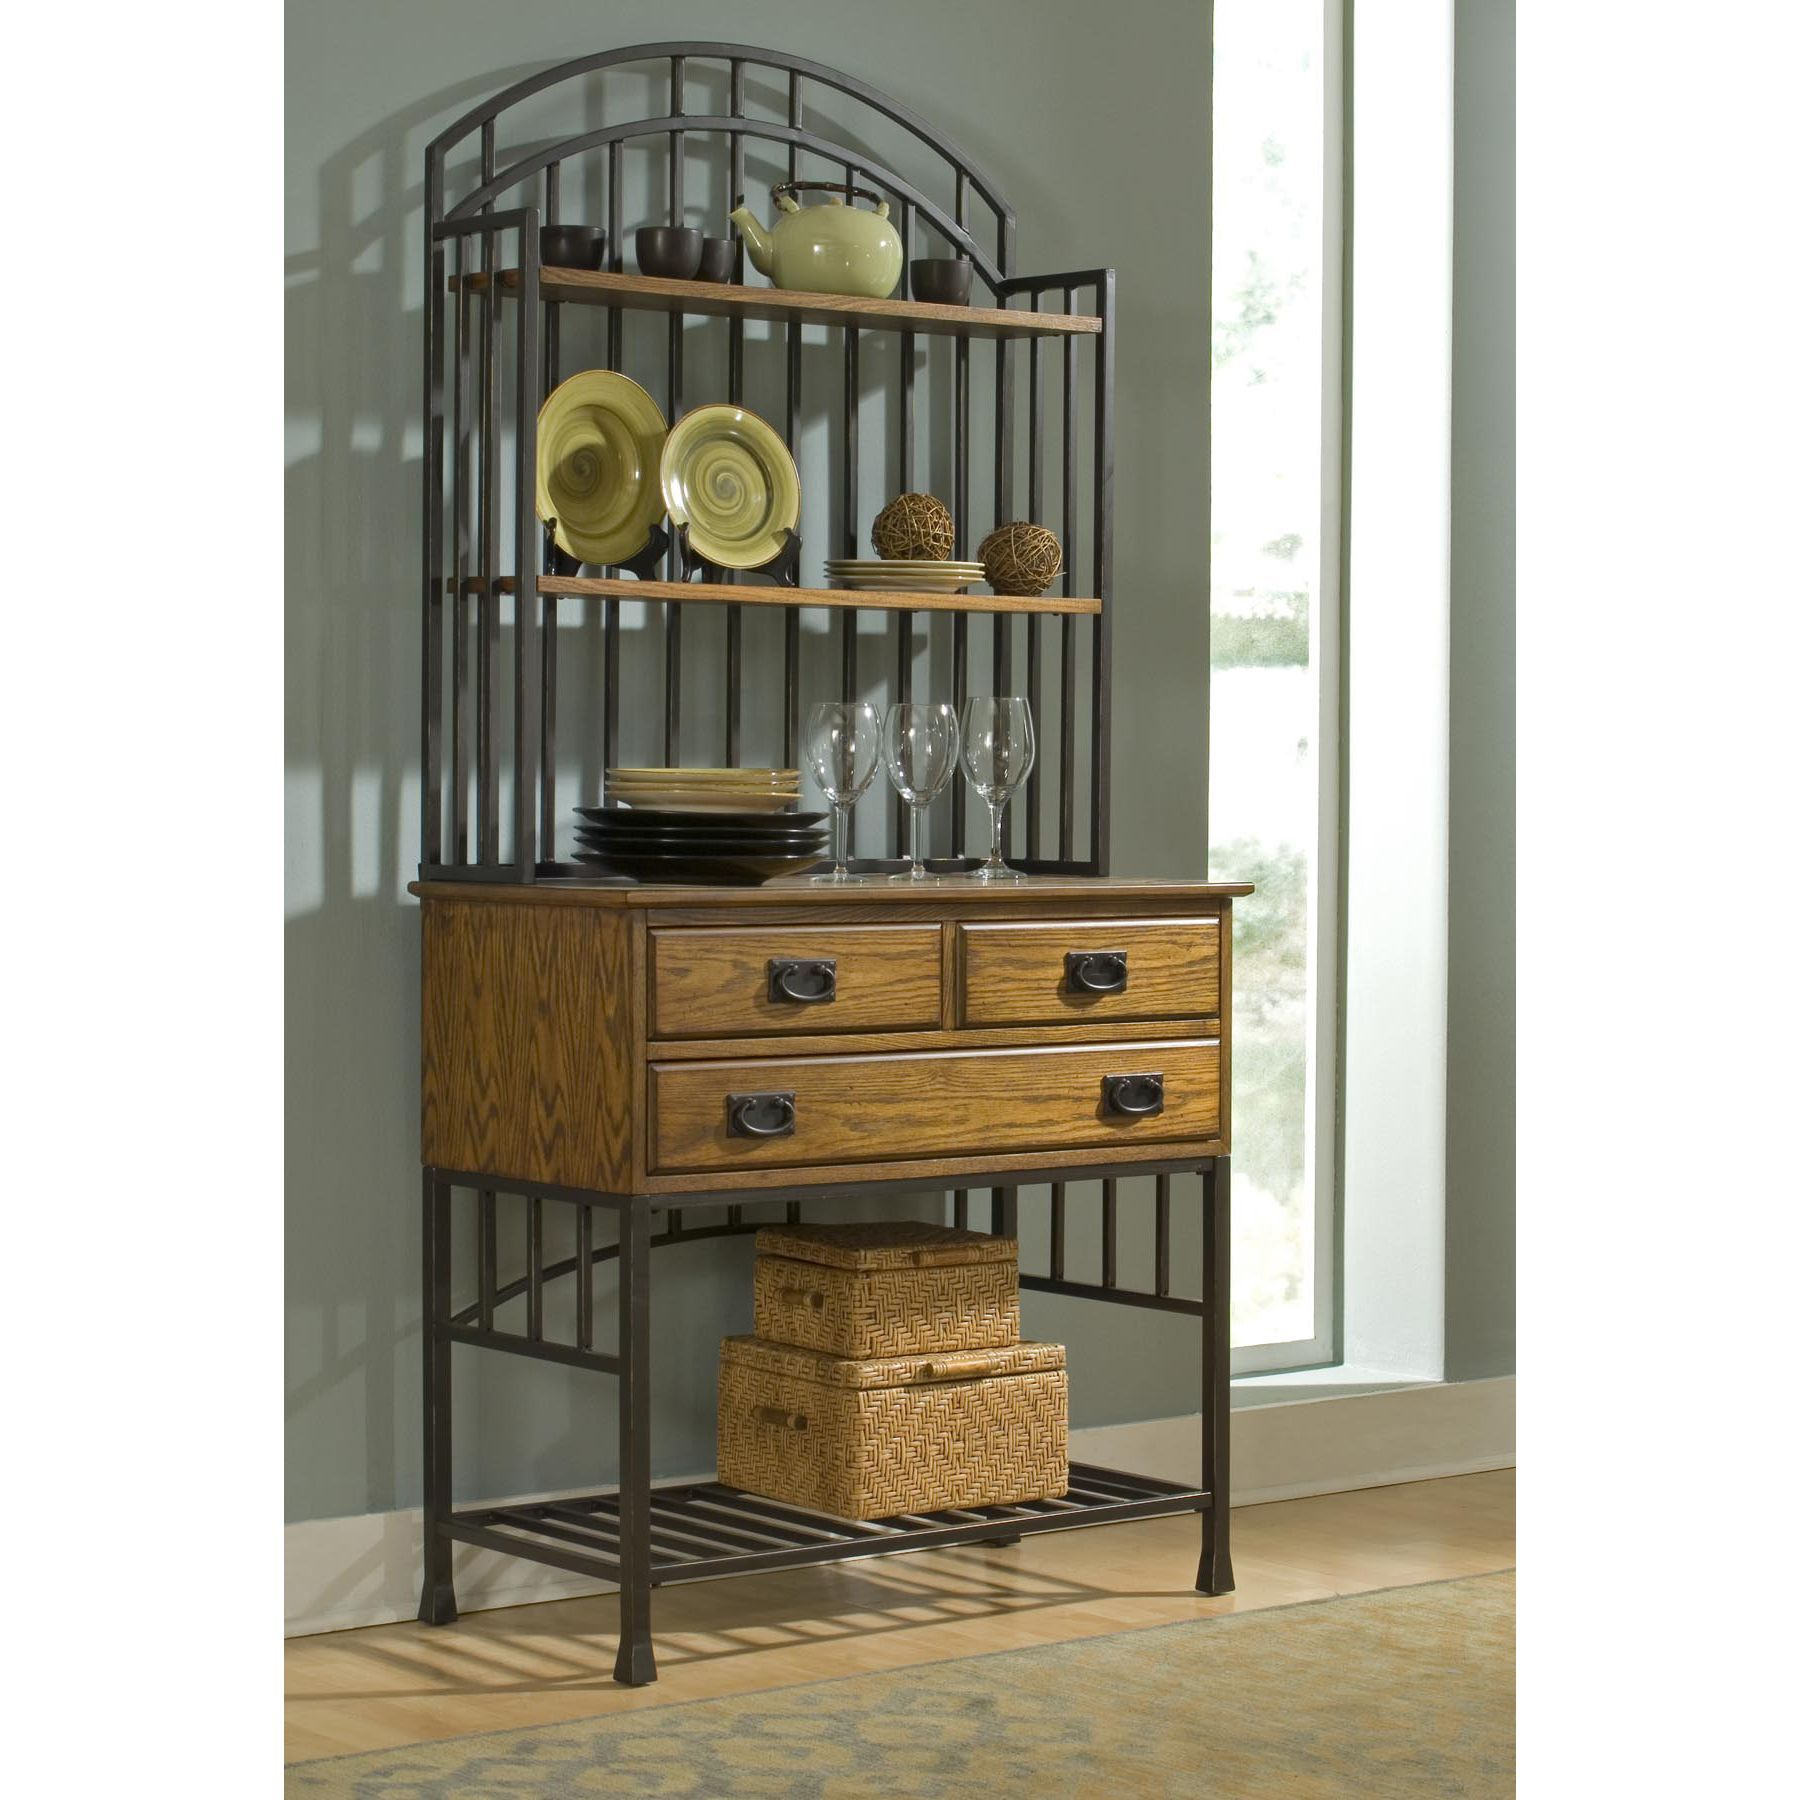 Add style and storage to your kitchen with this distressed oak ...